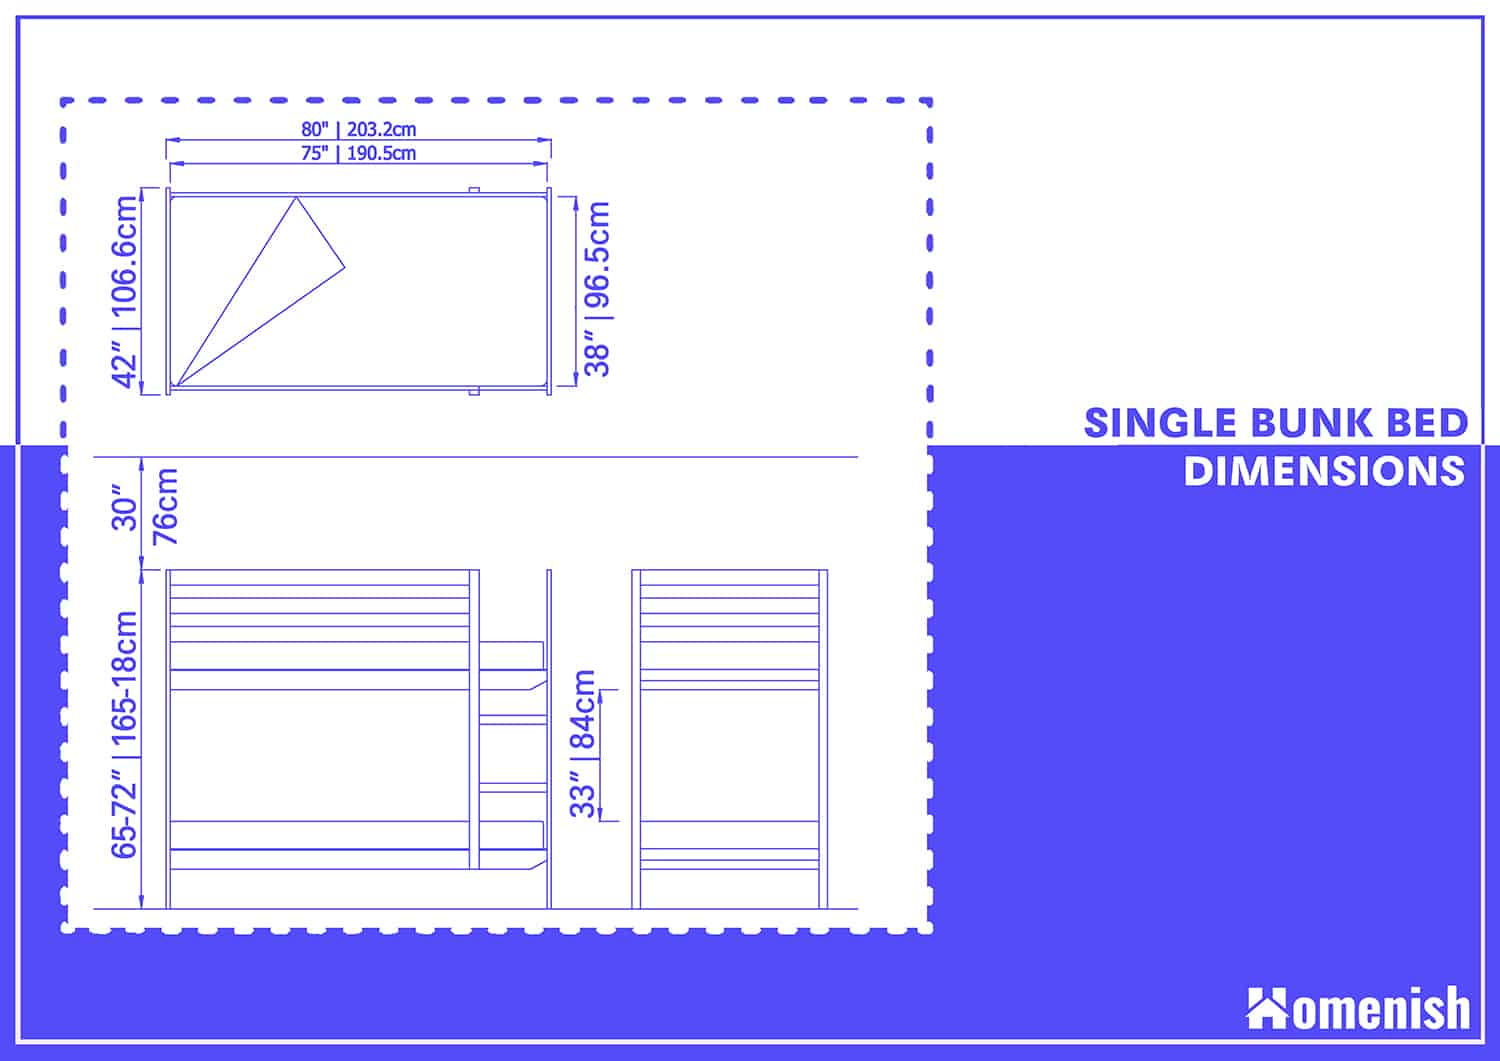 Single Bunk Bed Dimensions